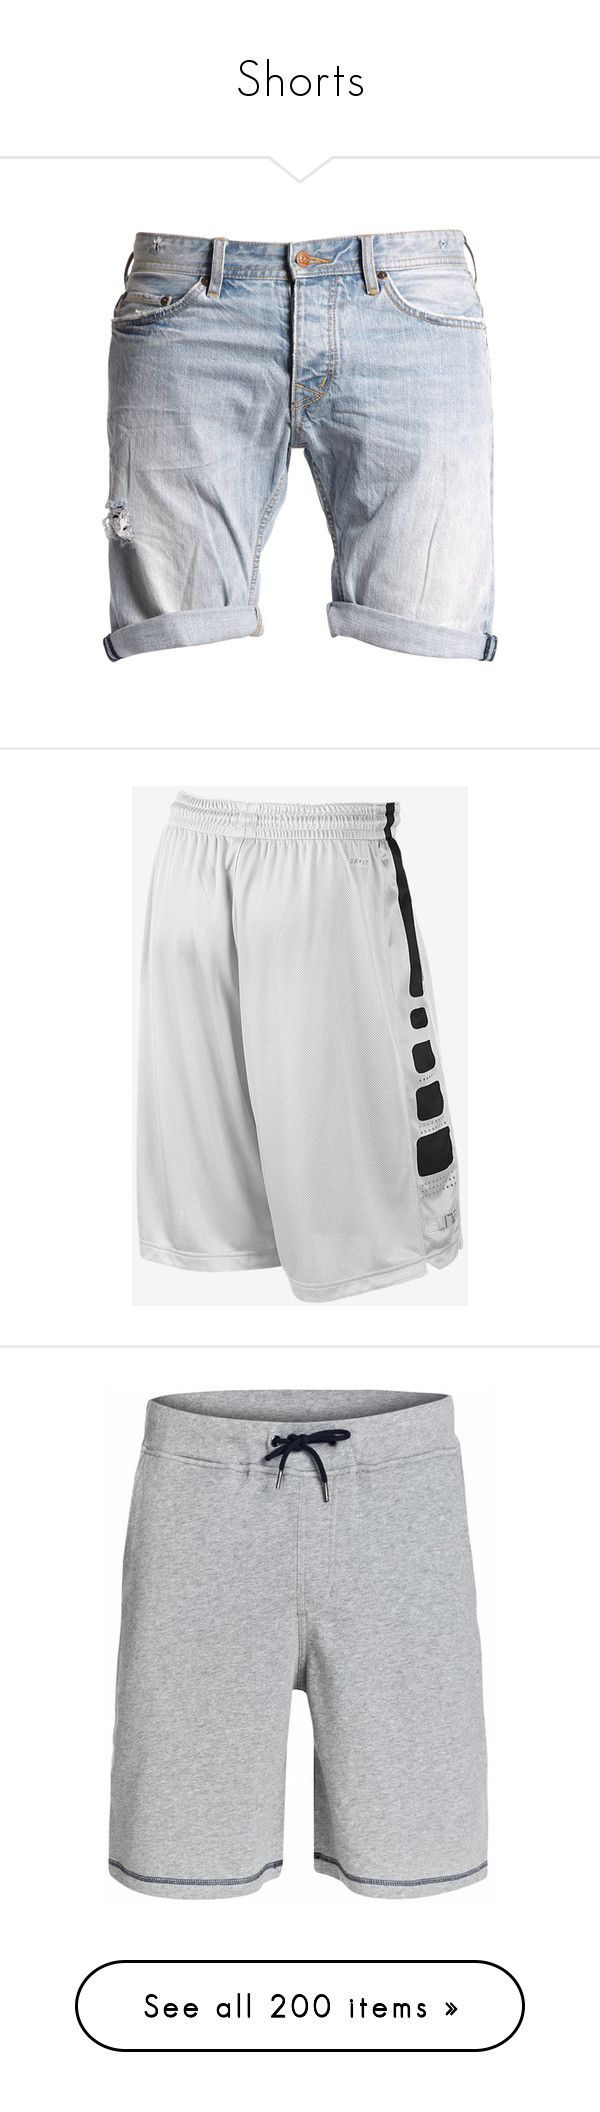 """Shorts"" by curiousgamer ❤ liked on Polyvore featuring shorts, men, bottoms, pants, men's clothes, destroyed jean shorts, summer shorts, ripped jean shorts, denim short shorts and jean shorts"